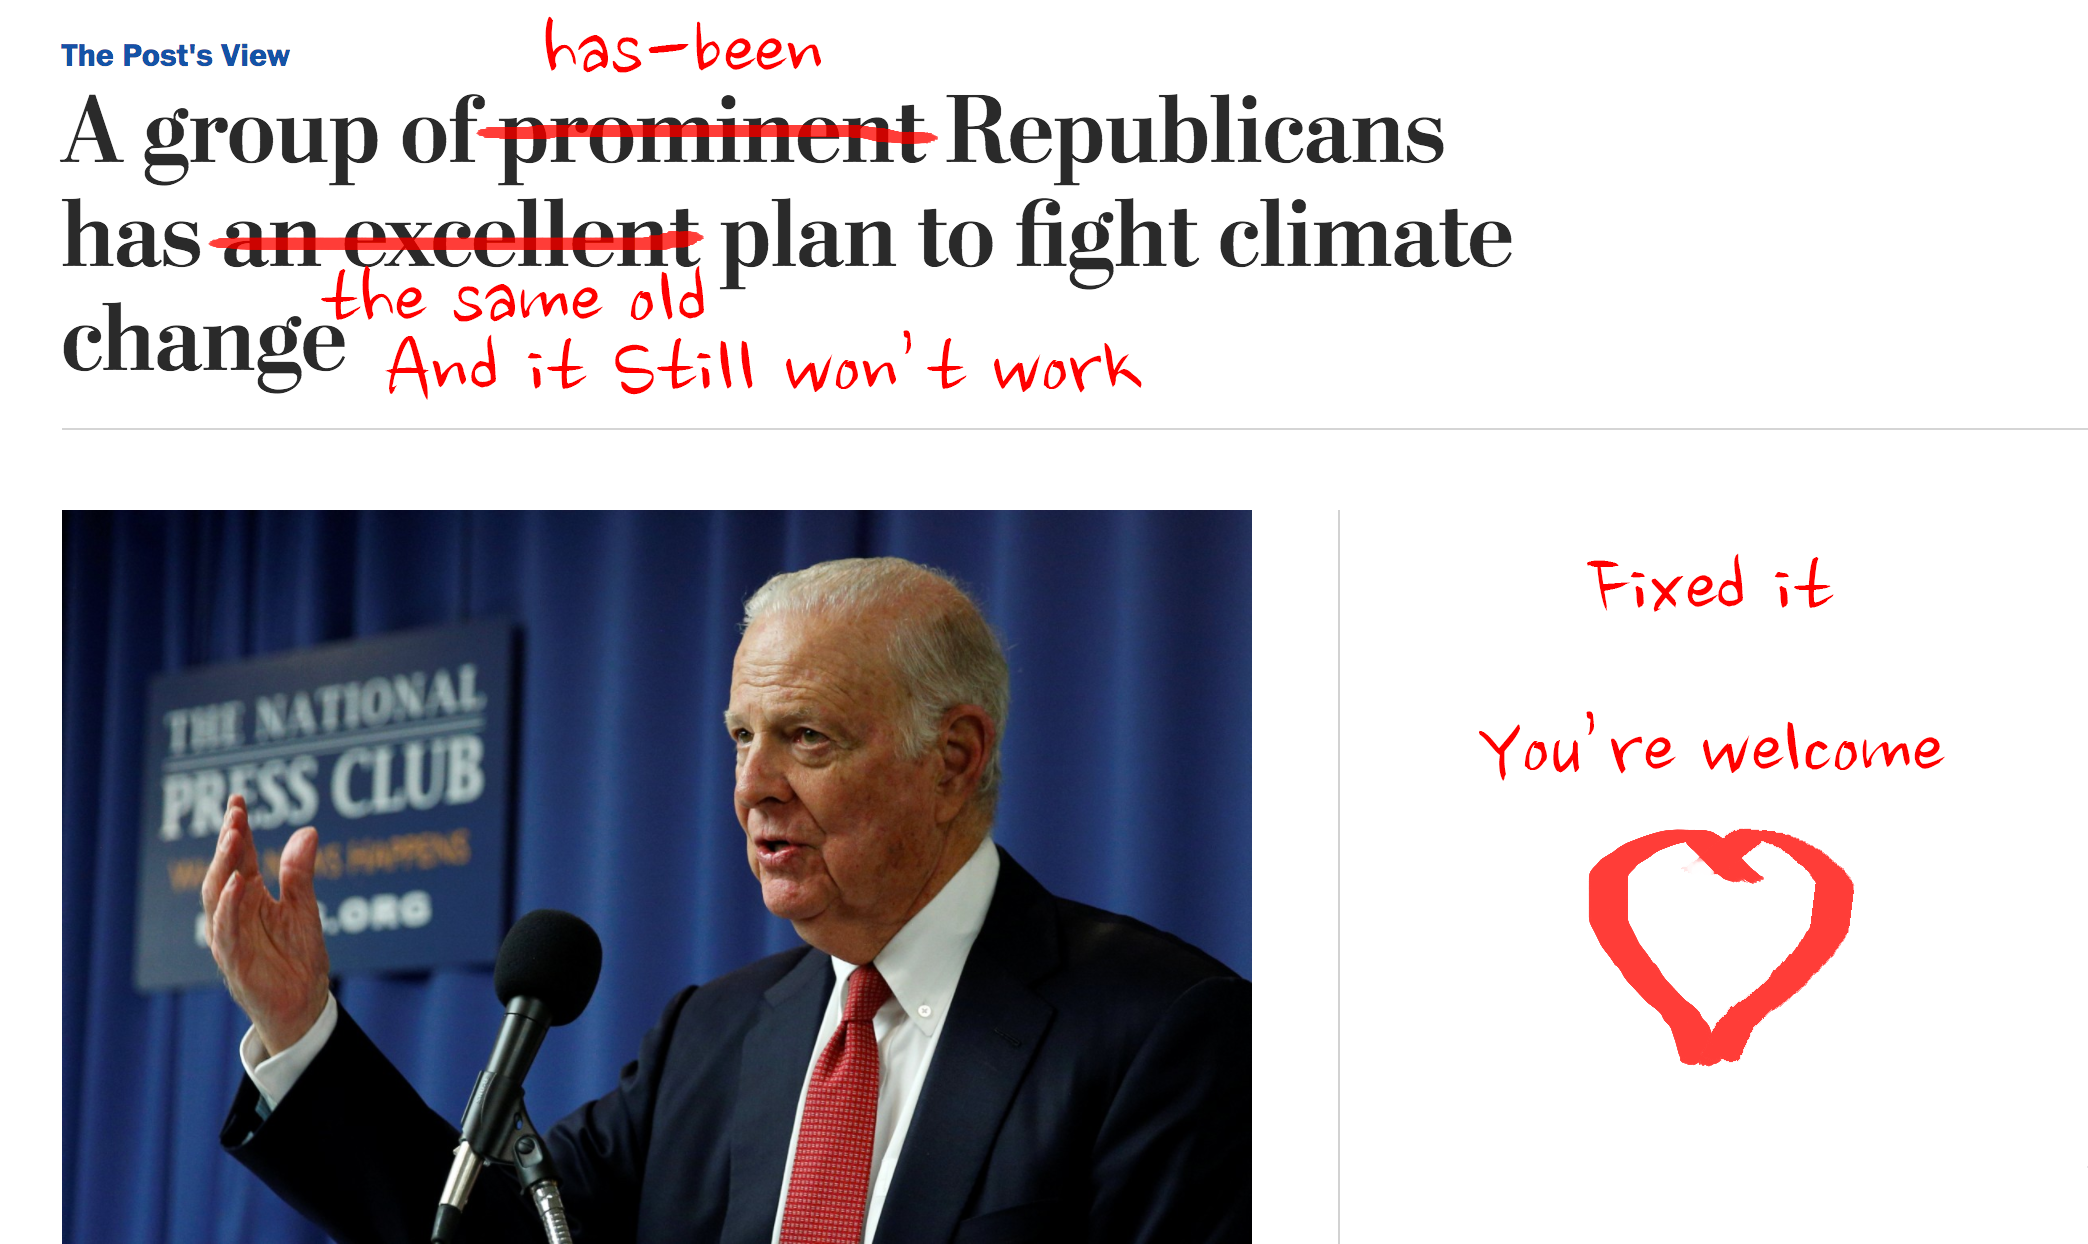 We fixed the coverage on the Carbon Tax